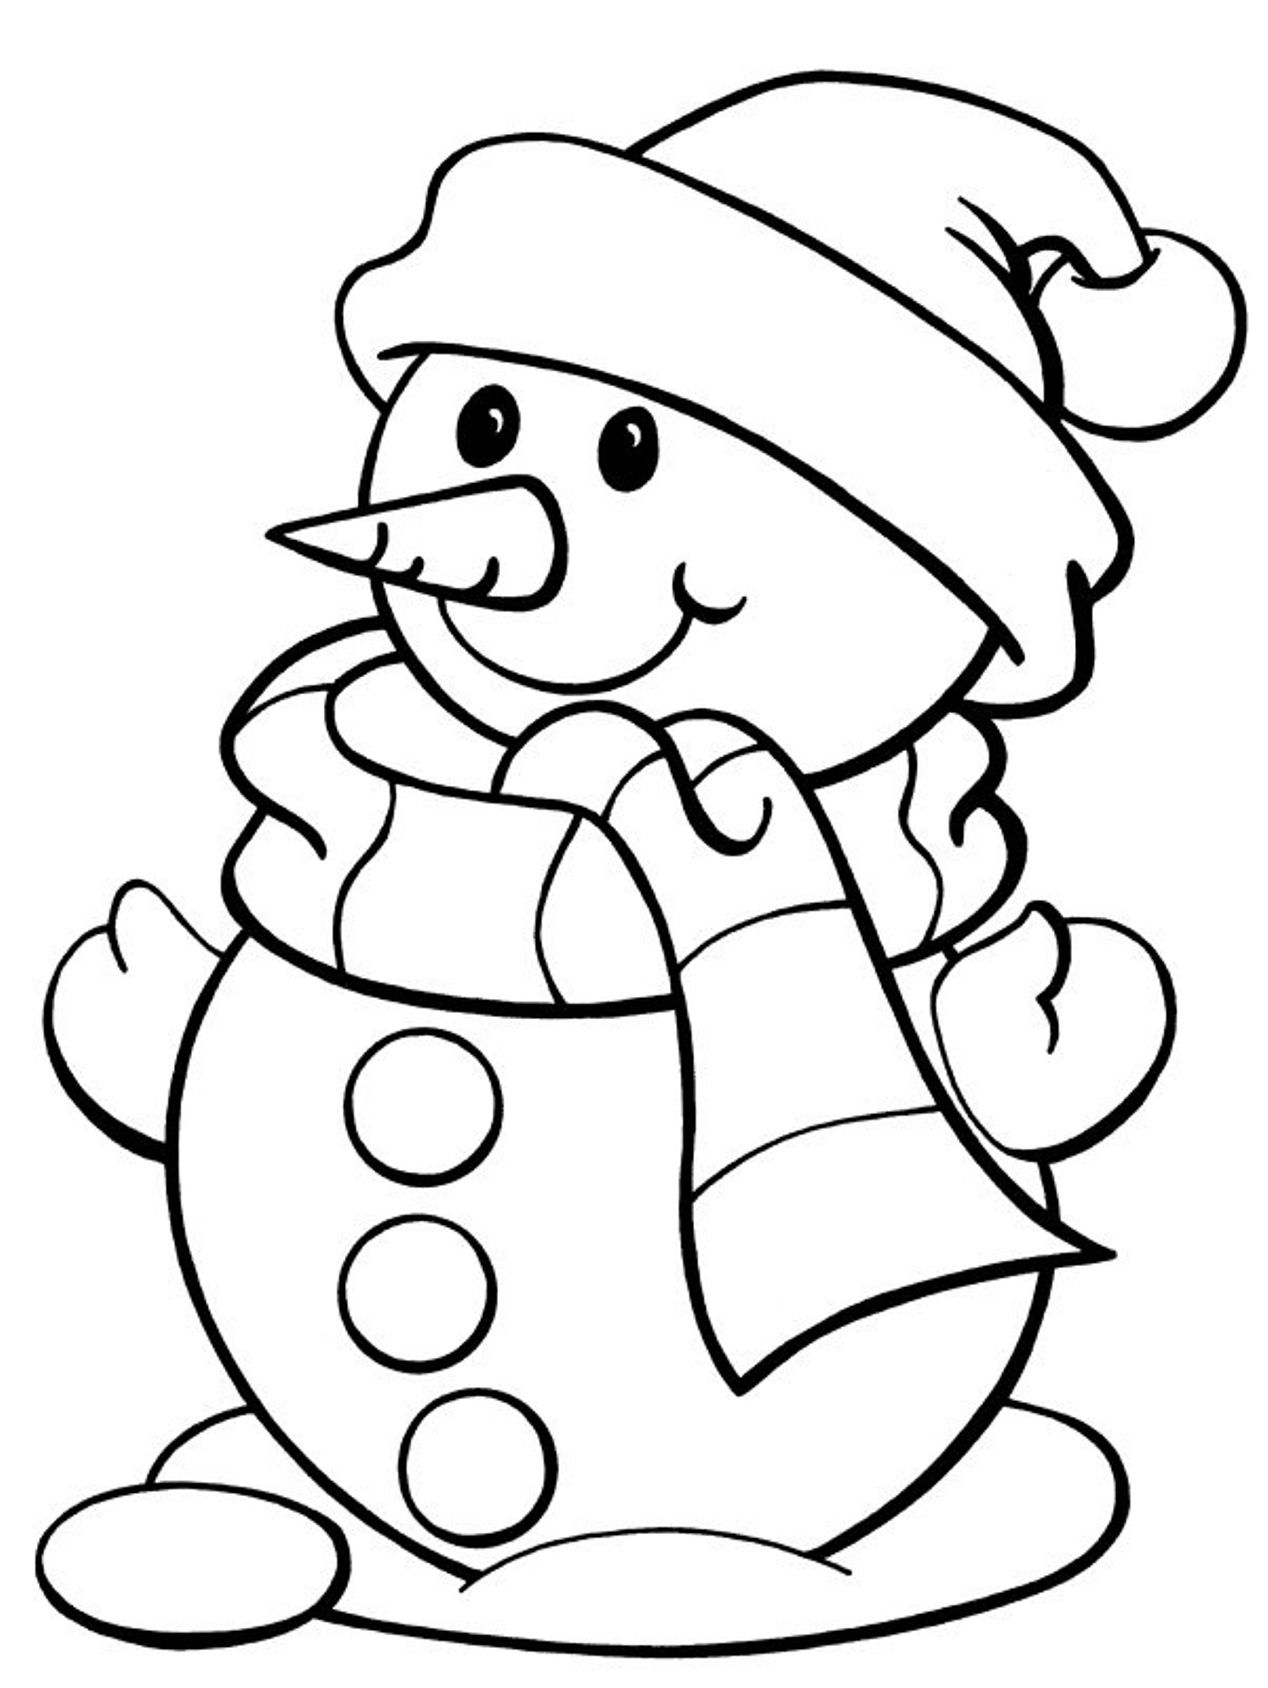 Winter pages to color -